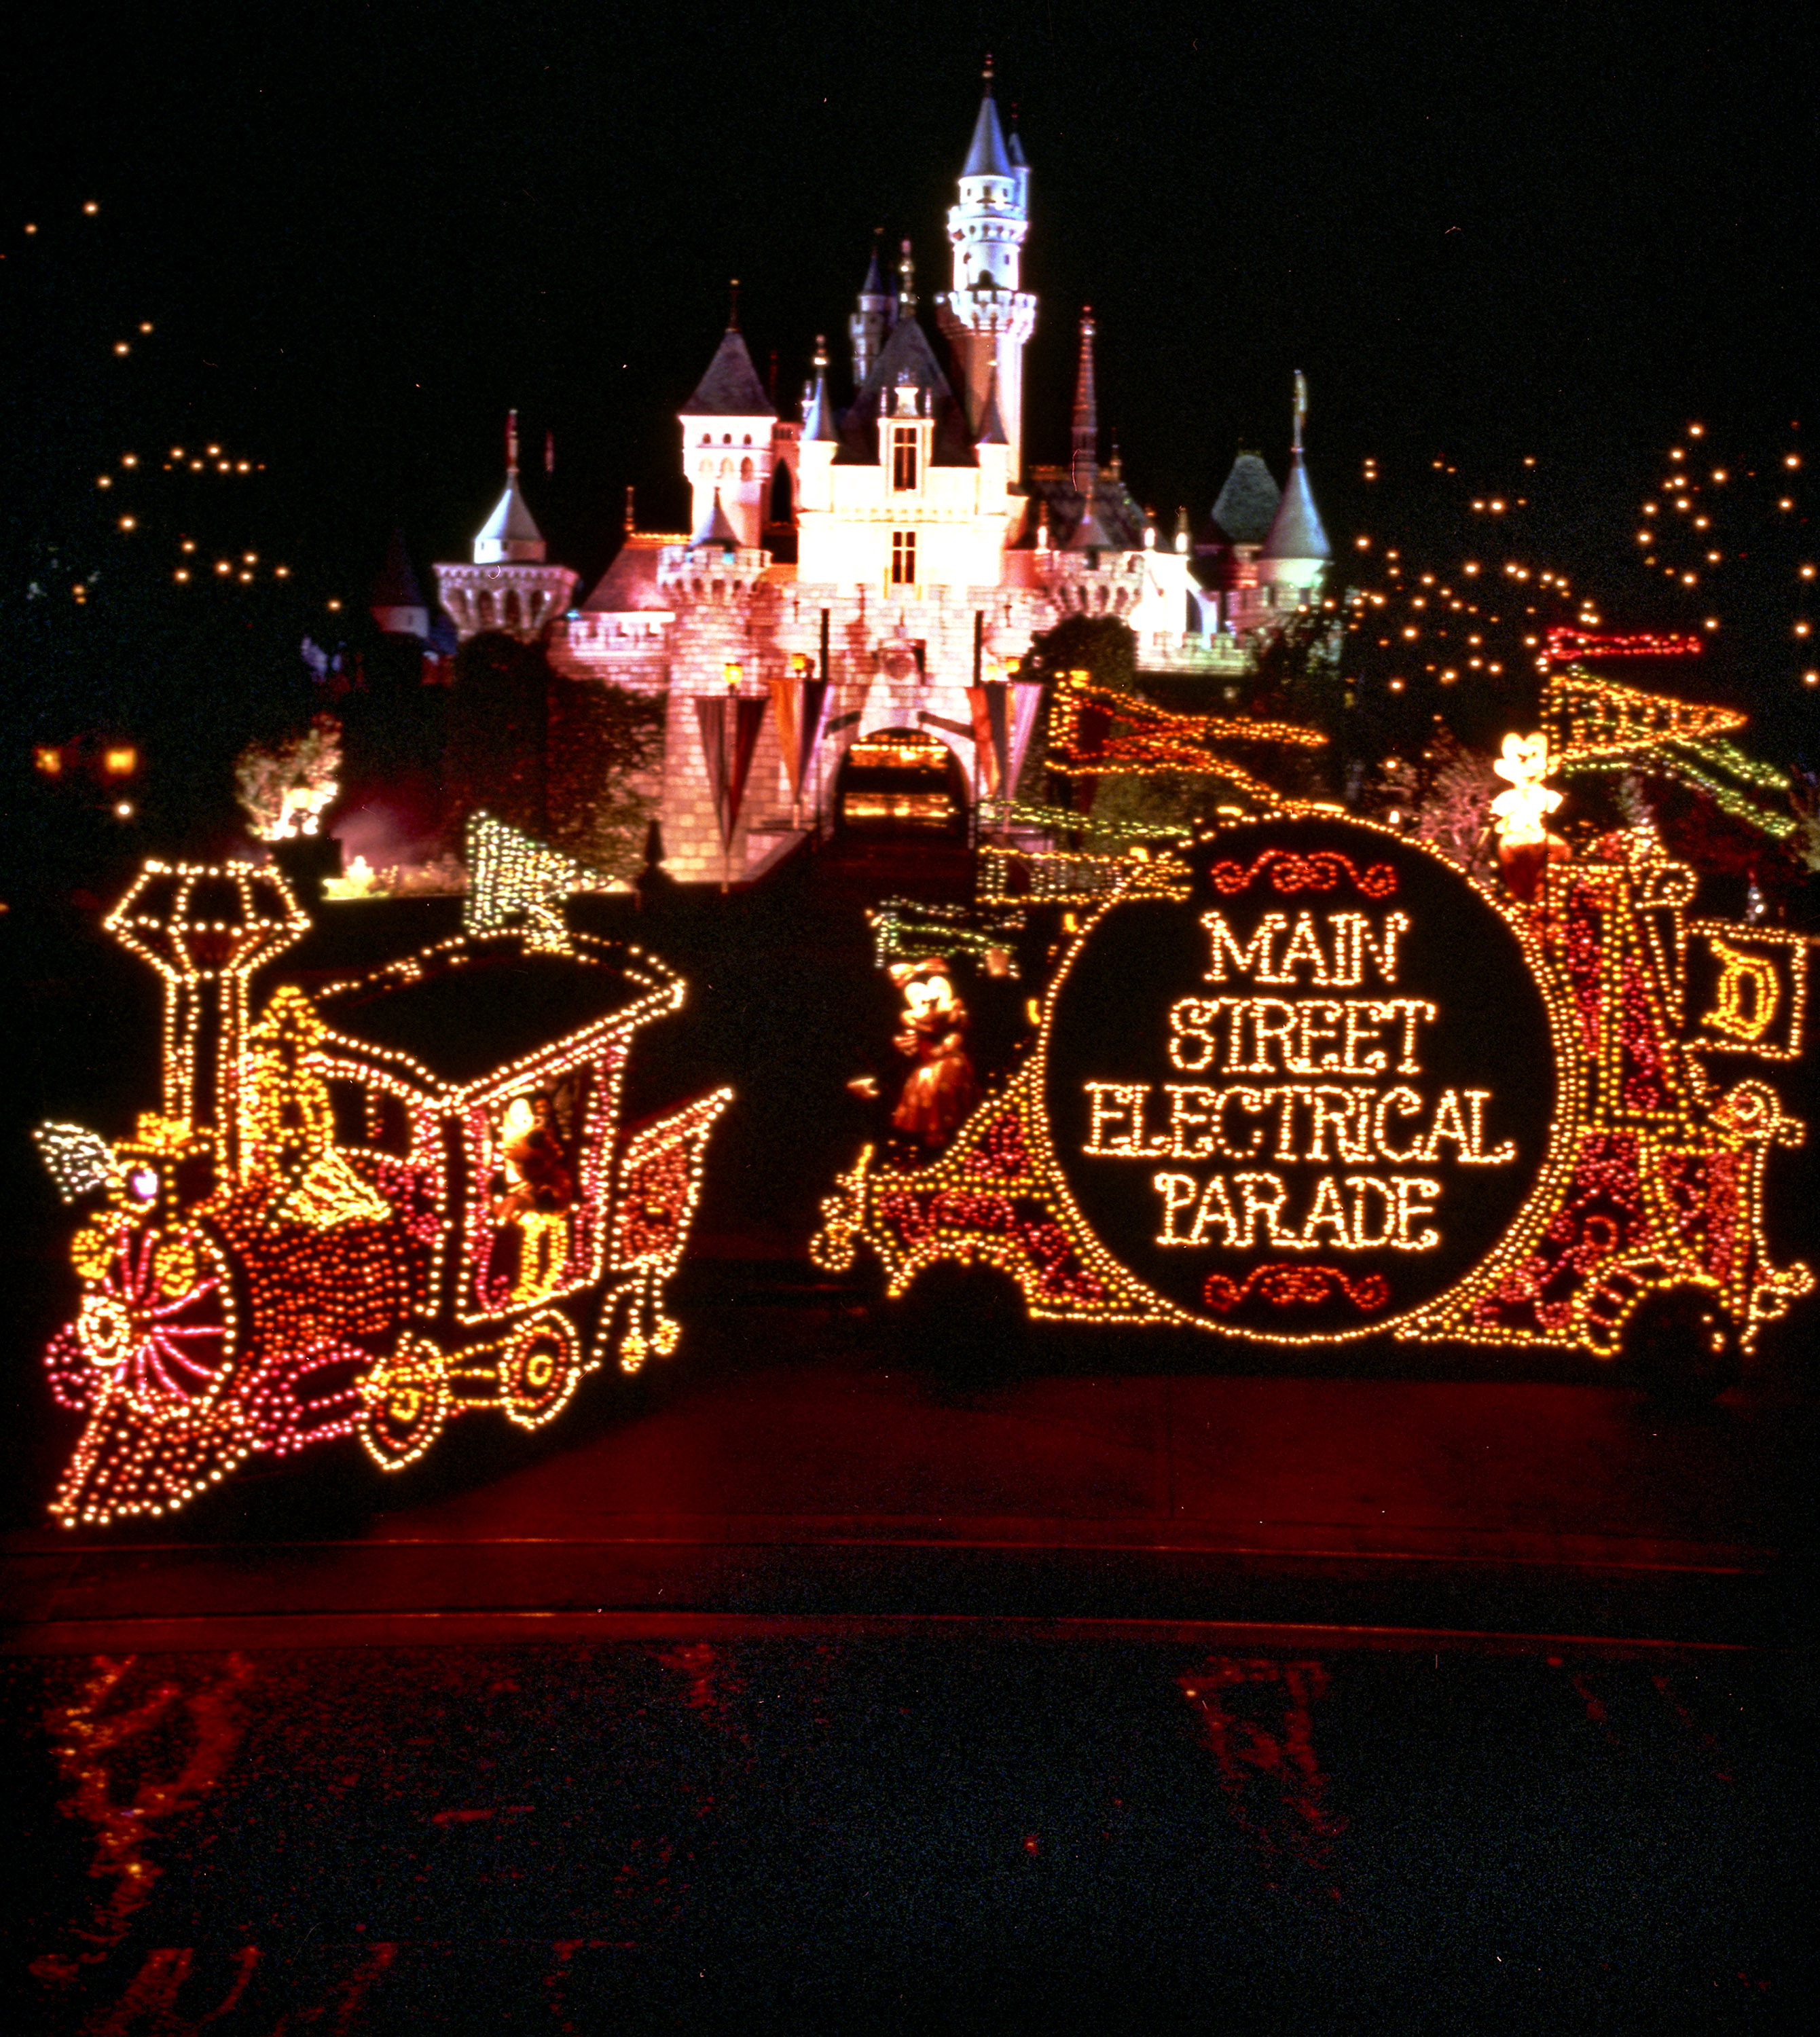 Main Street Electrical Parade at Disneyland Park